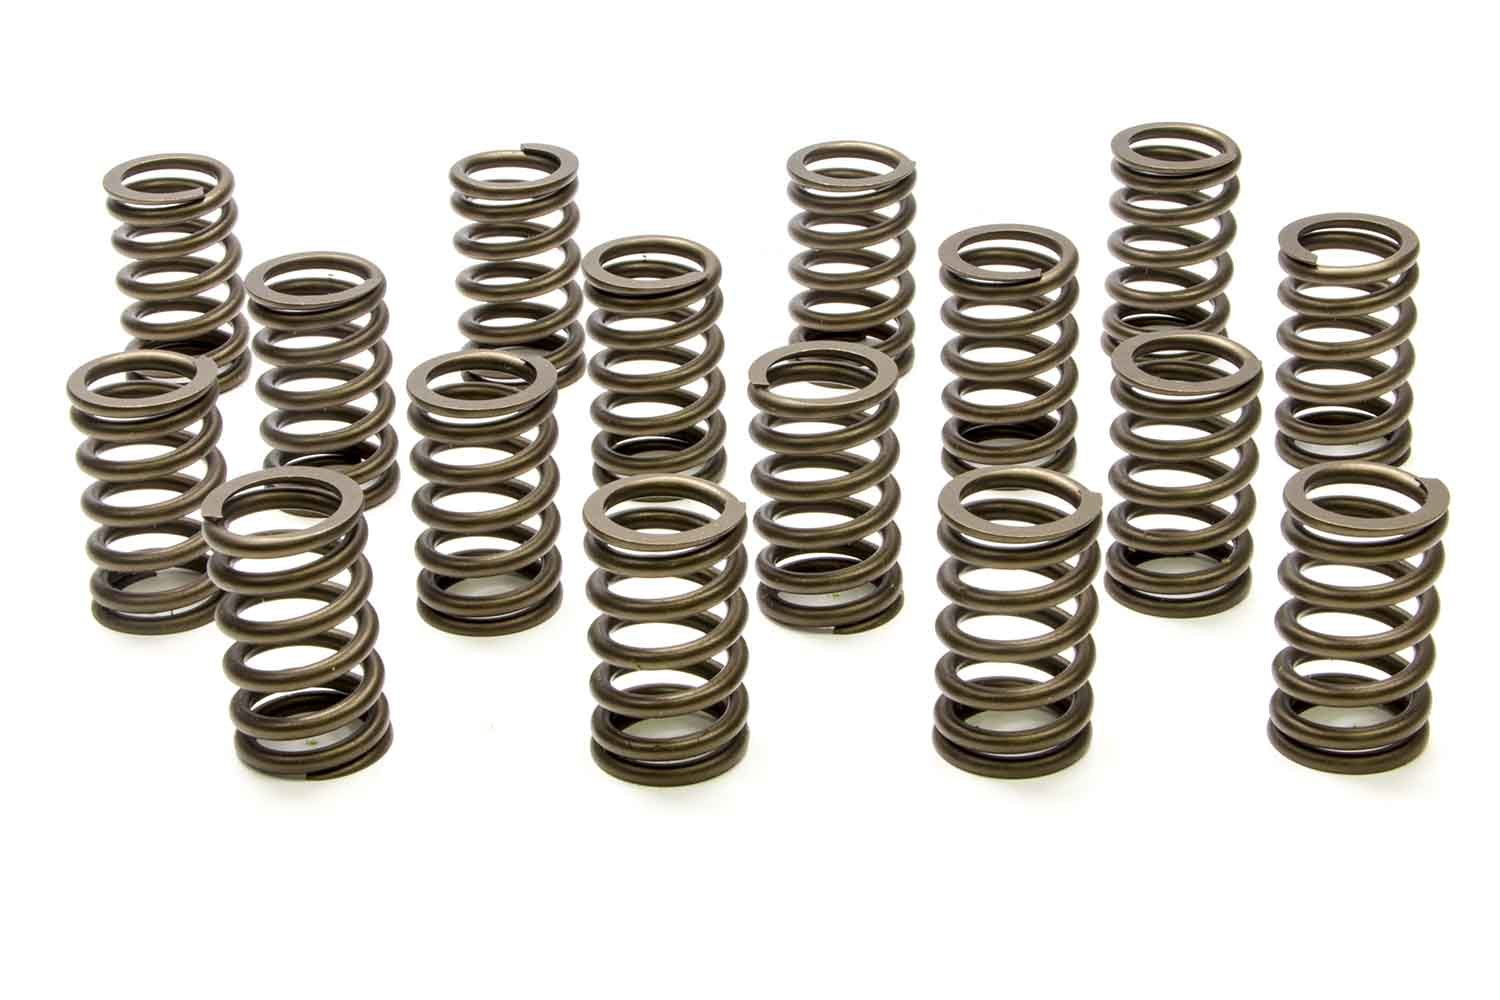 PAC Racing Springs PAC-1210X Valve Spring, RPM Series, Single Spring, 290 lb/in Spring Rate, 1.150 in Coil Bind, 1.245 in OD, Small Block Chevy, Set of 16